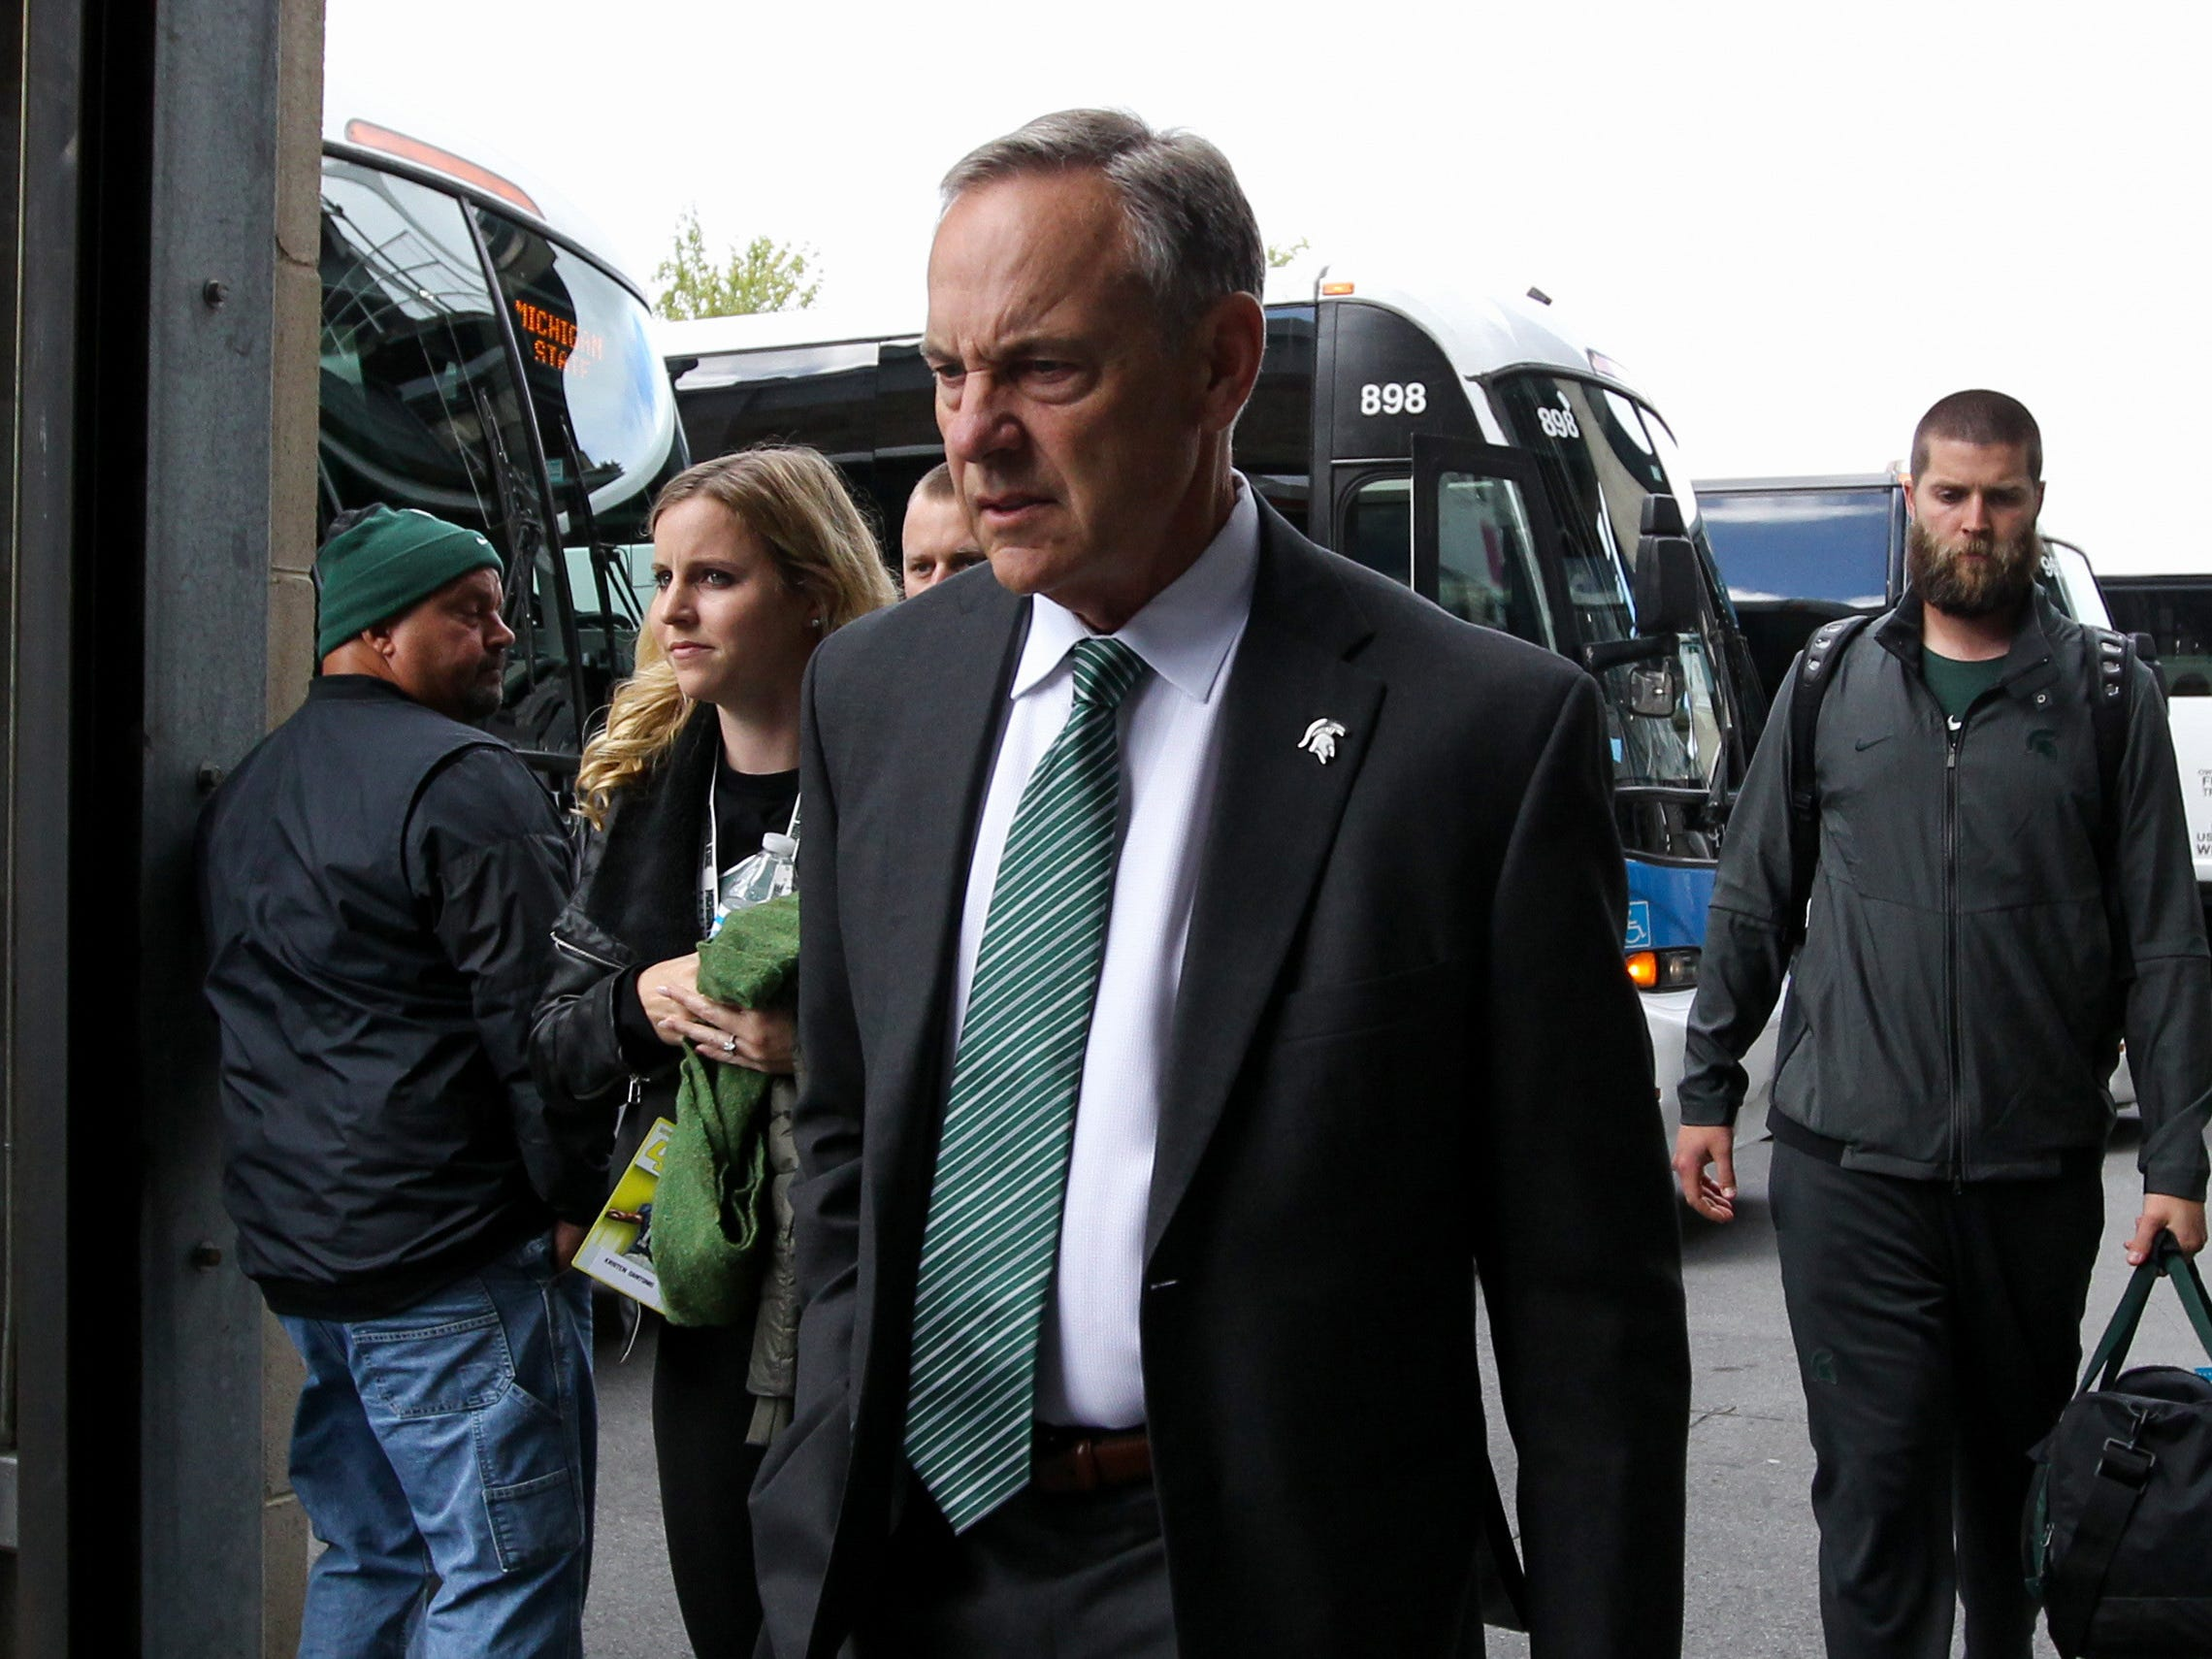 Michigan State Spartans head coach Mark Dantonio exits the team bus prior to the game against the Penn State Nittany Lions at Beaver Stadium.